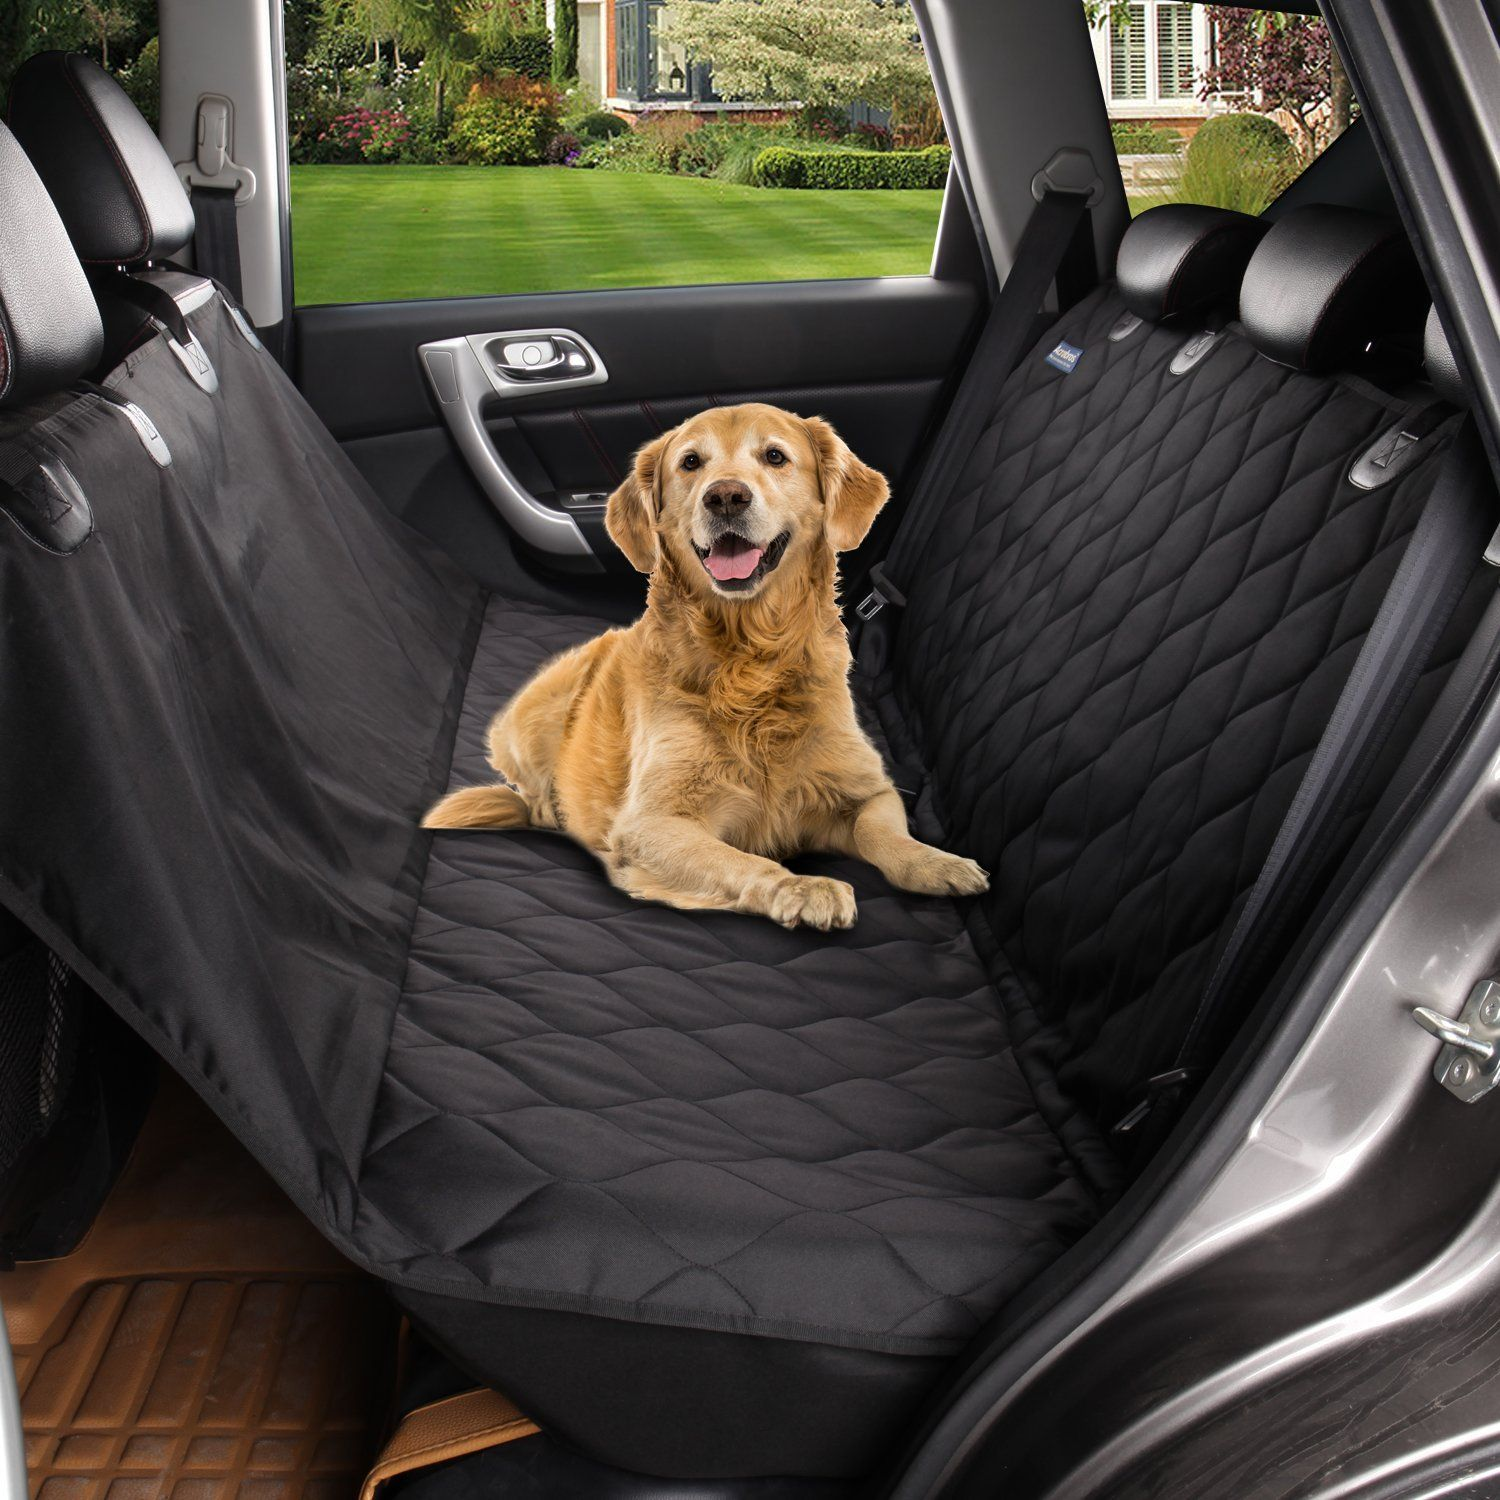 pillow car mat covers pet suvs with waterproof travel hammock for cars large products a backseat pawow trucks most dog seat black cover